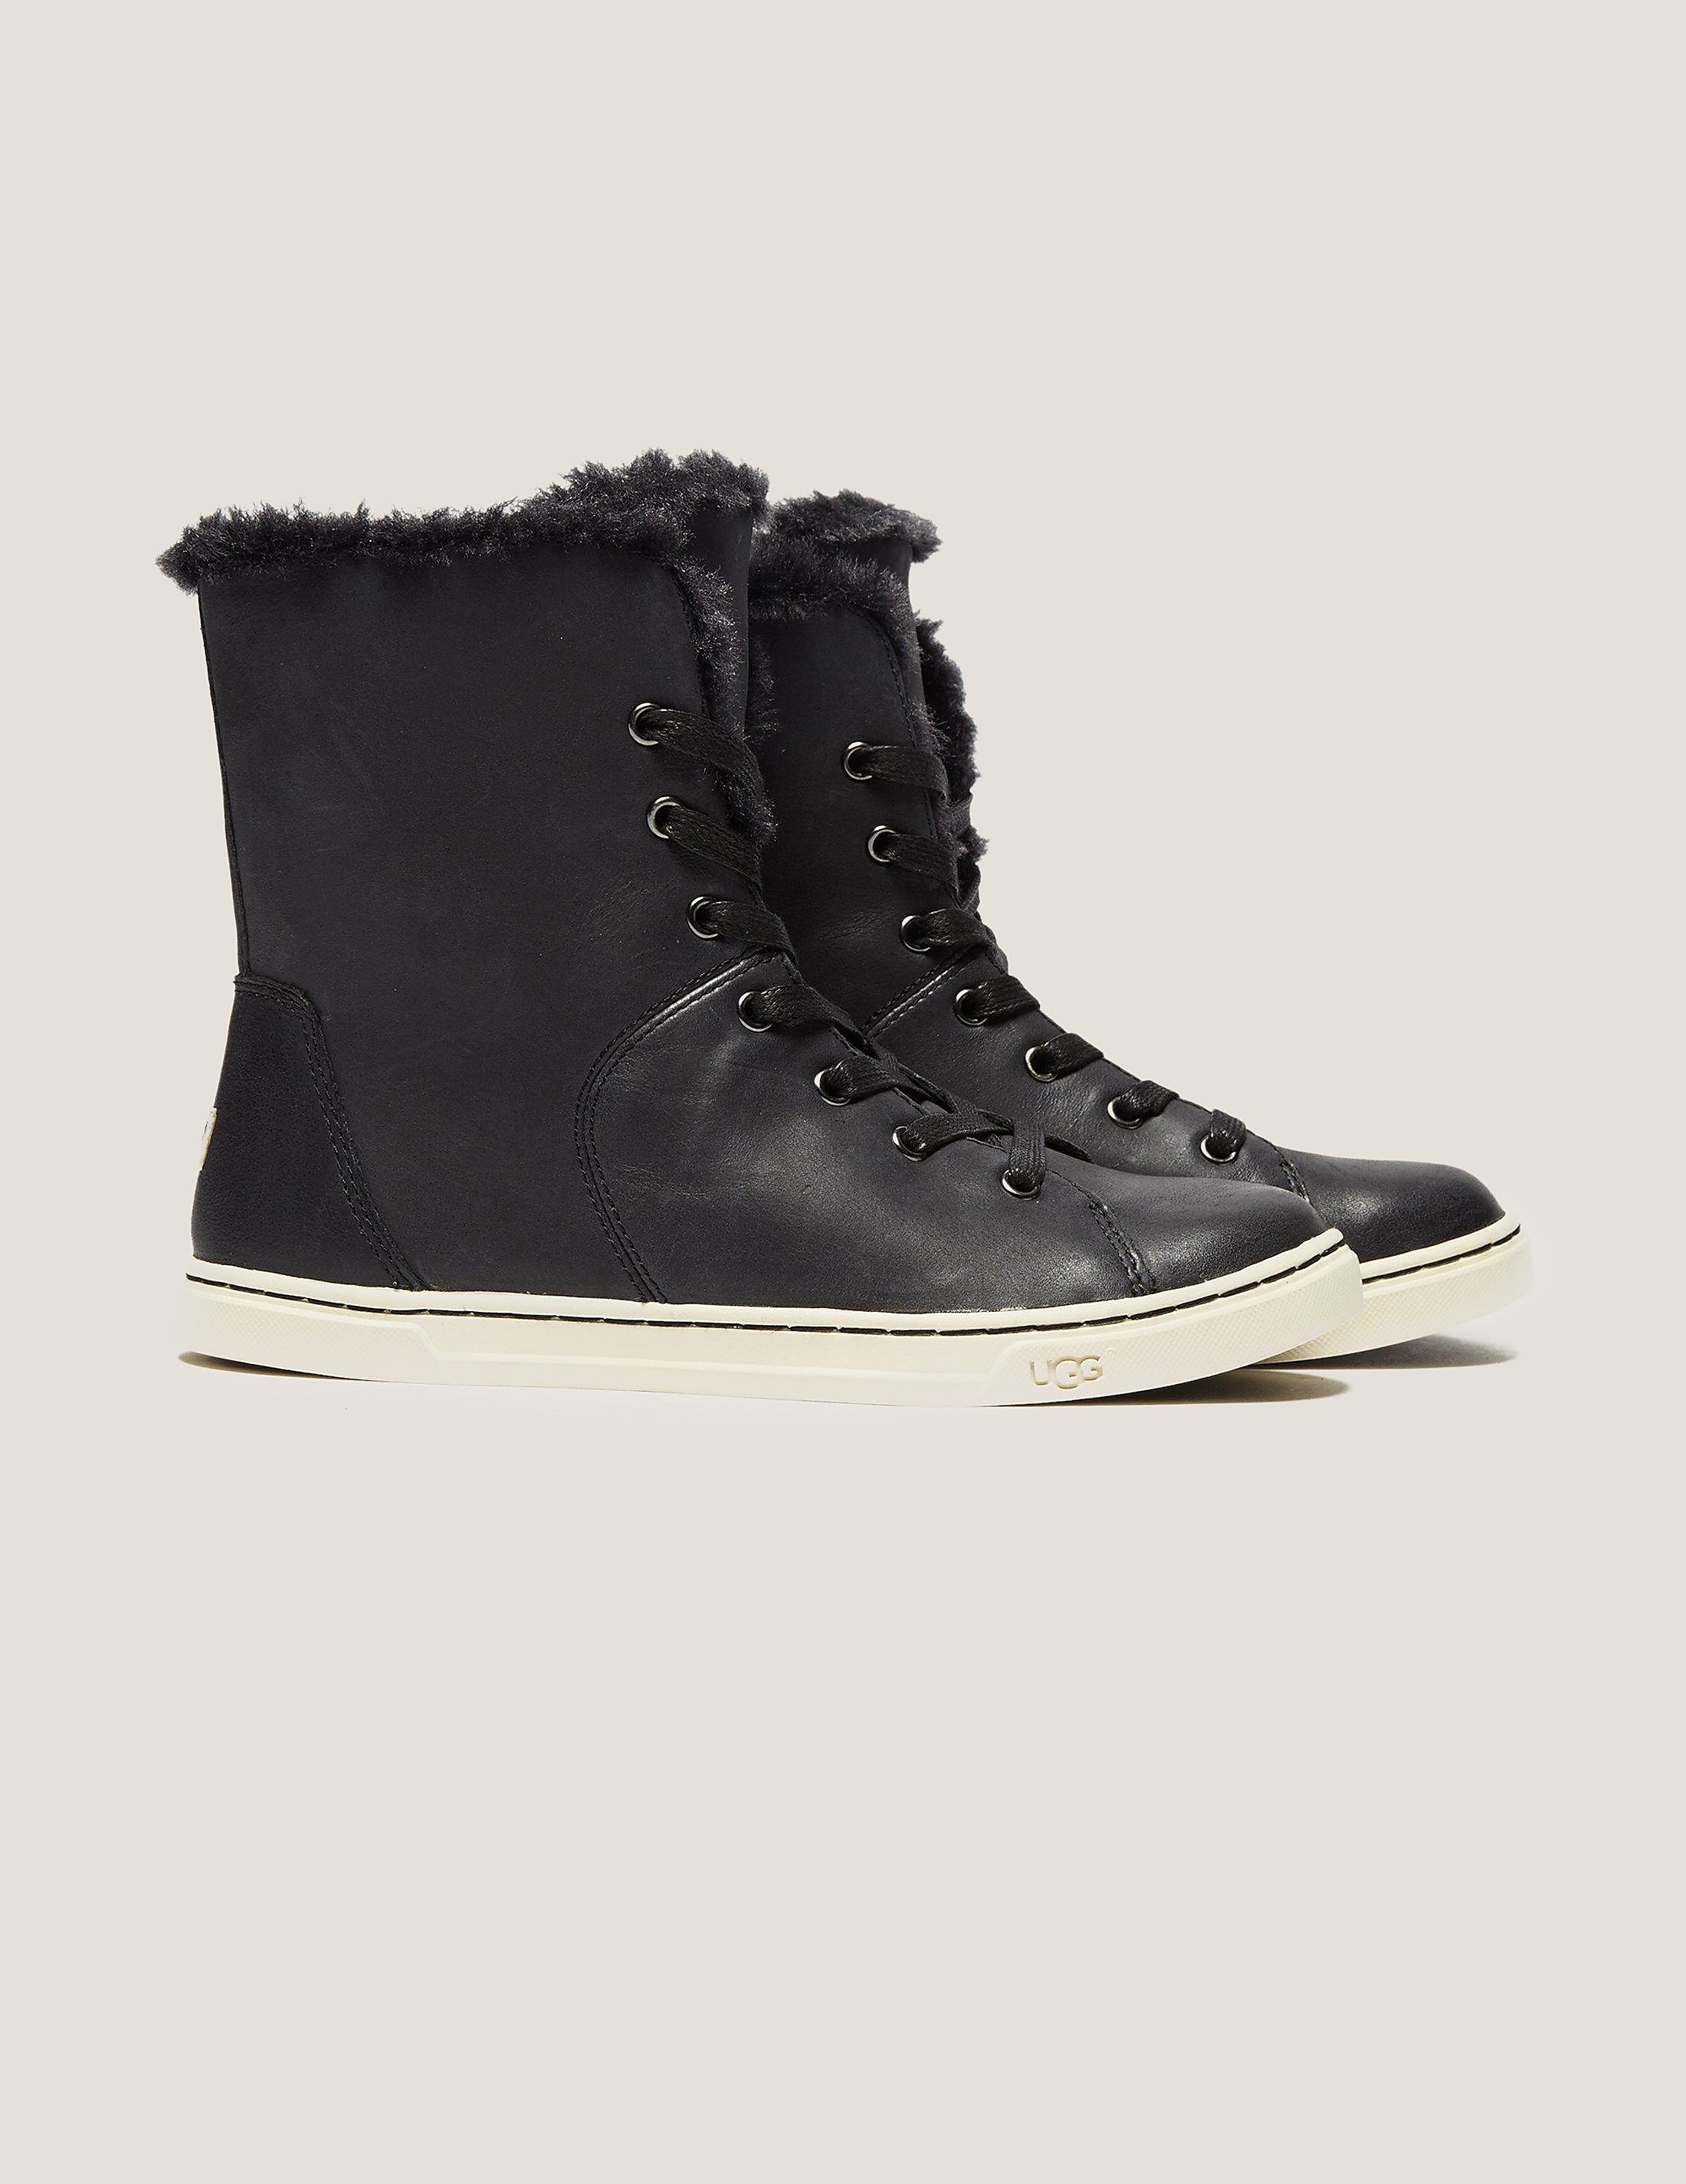 UGG Croft Luxe High Top